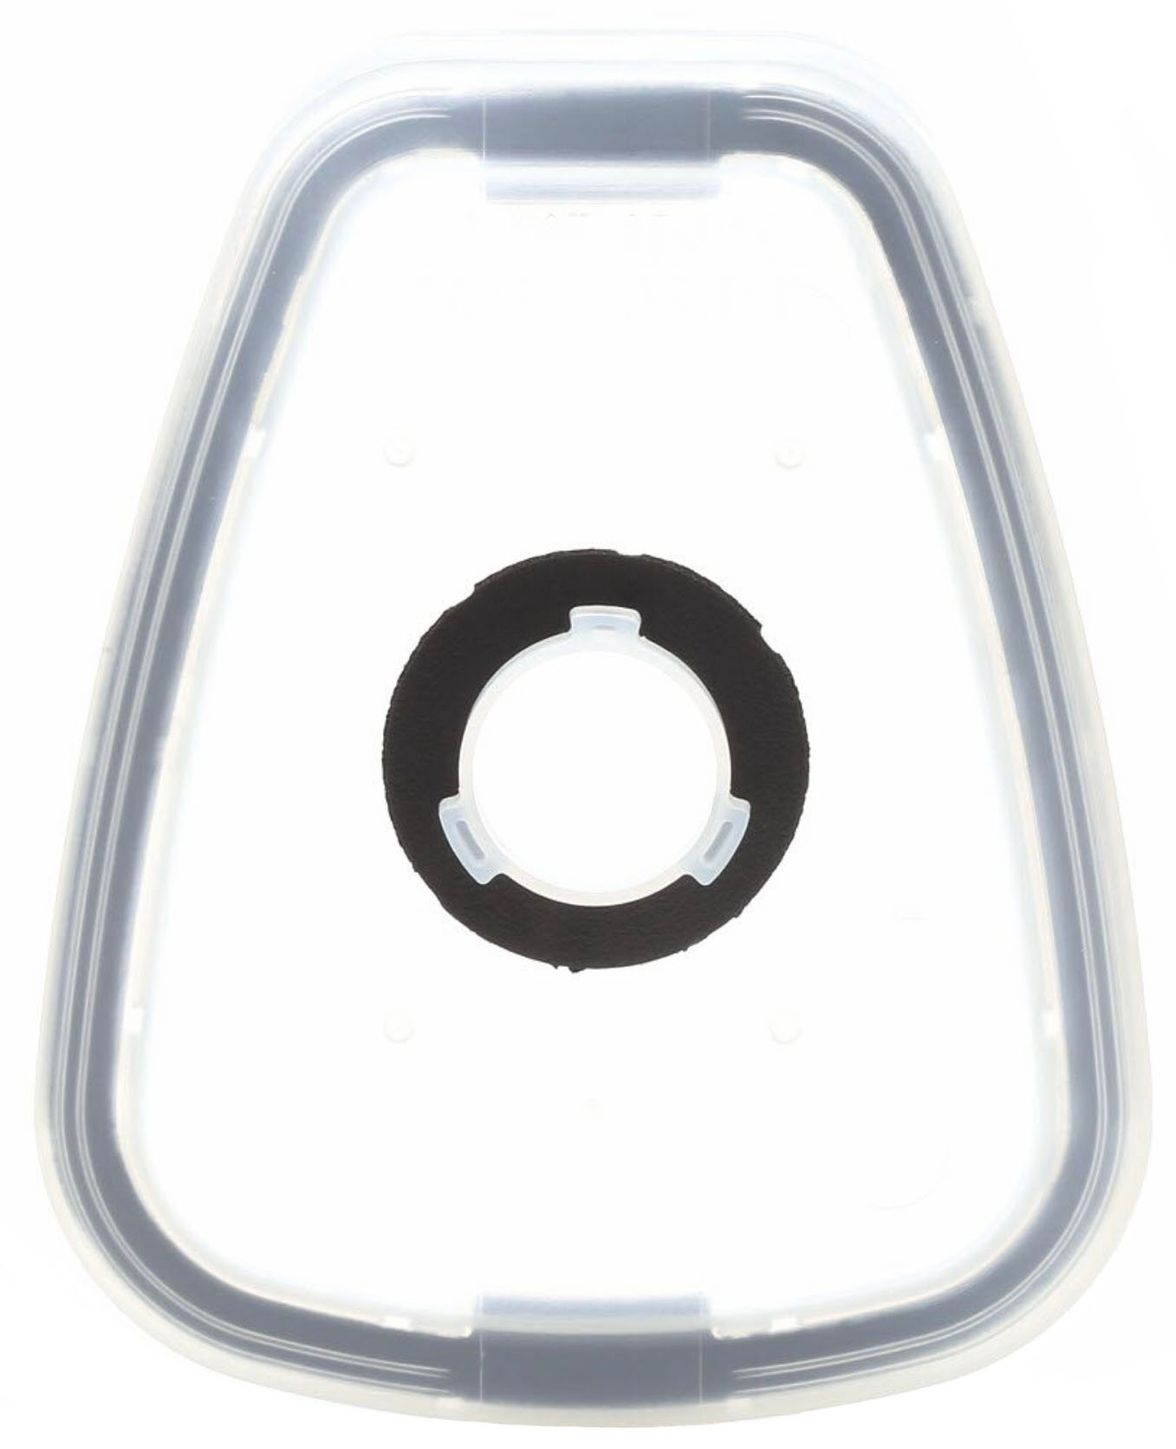 3M Filter Adapter 502 Front